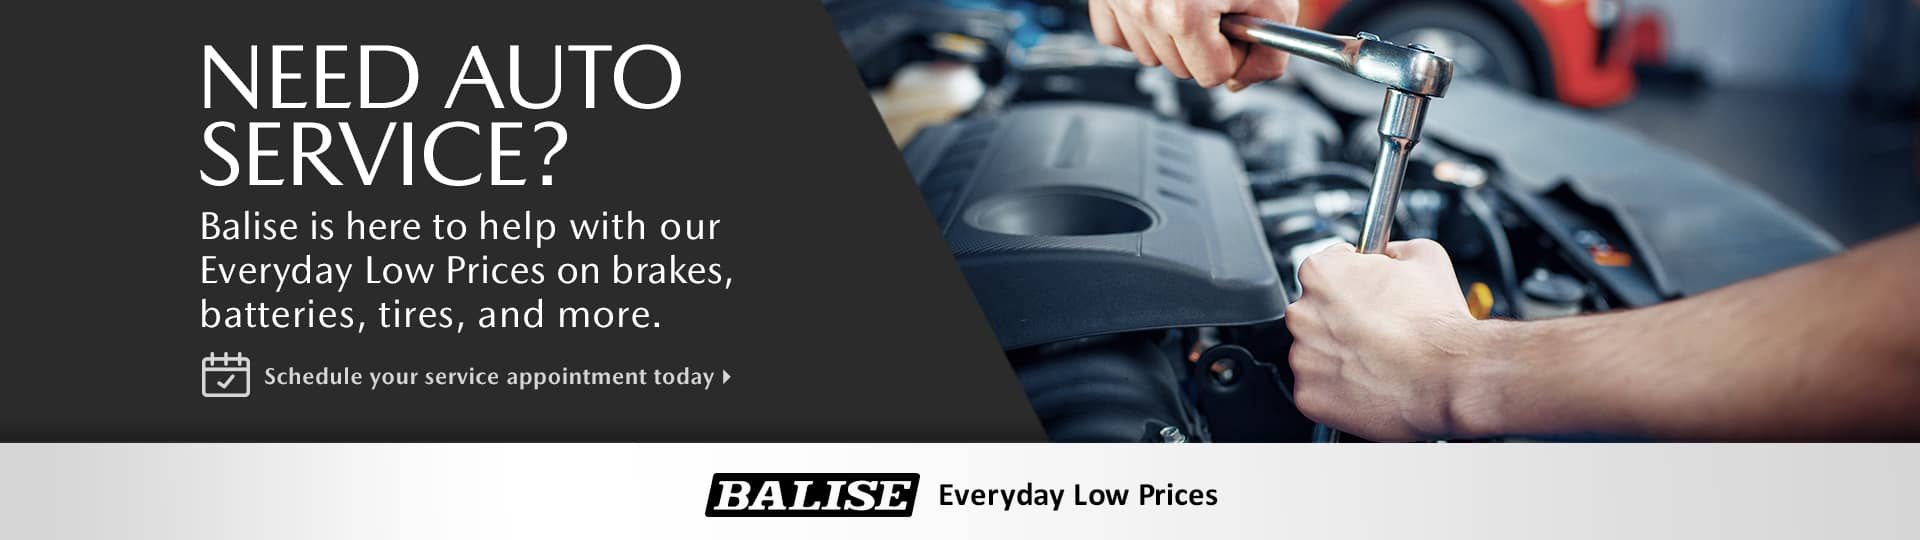 Balise Everyday Low Service Prices